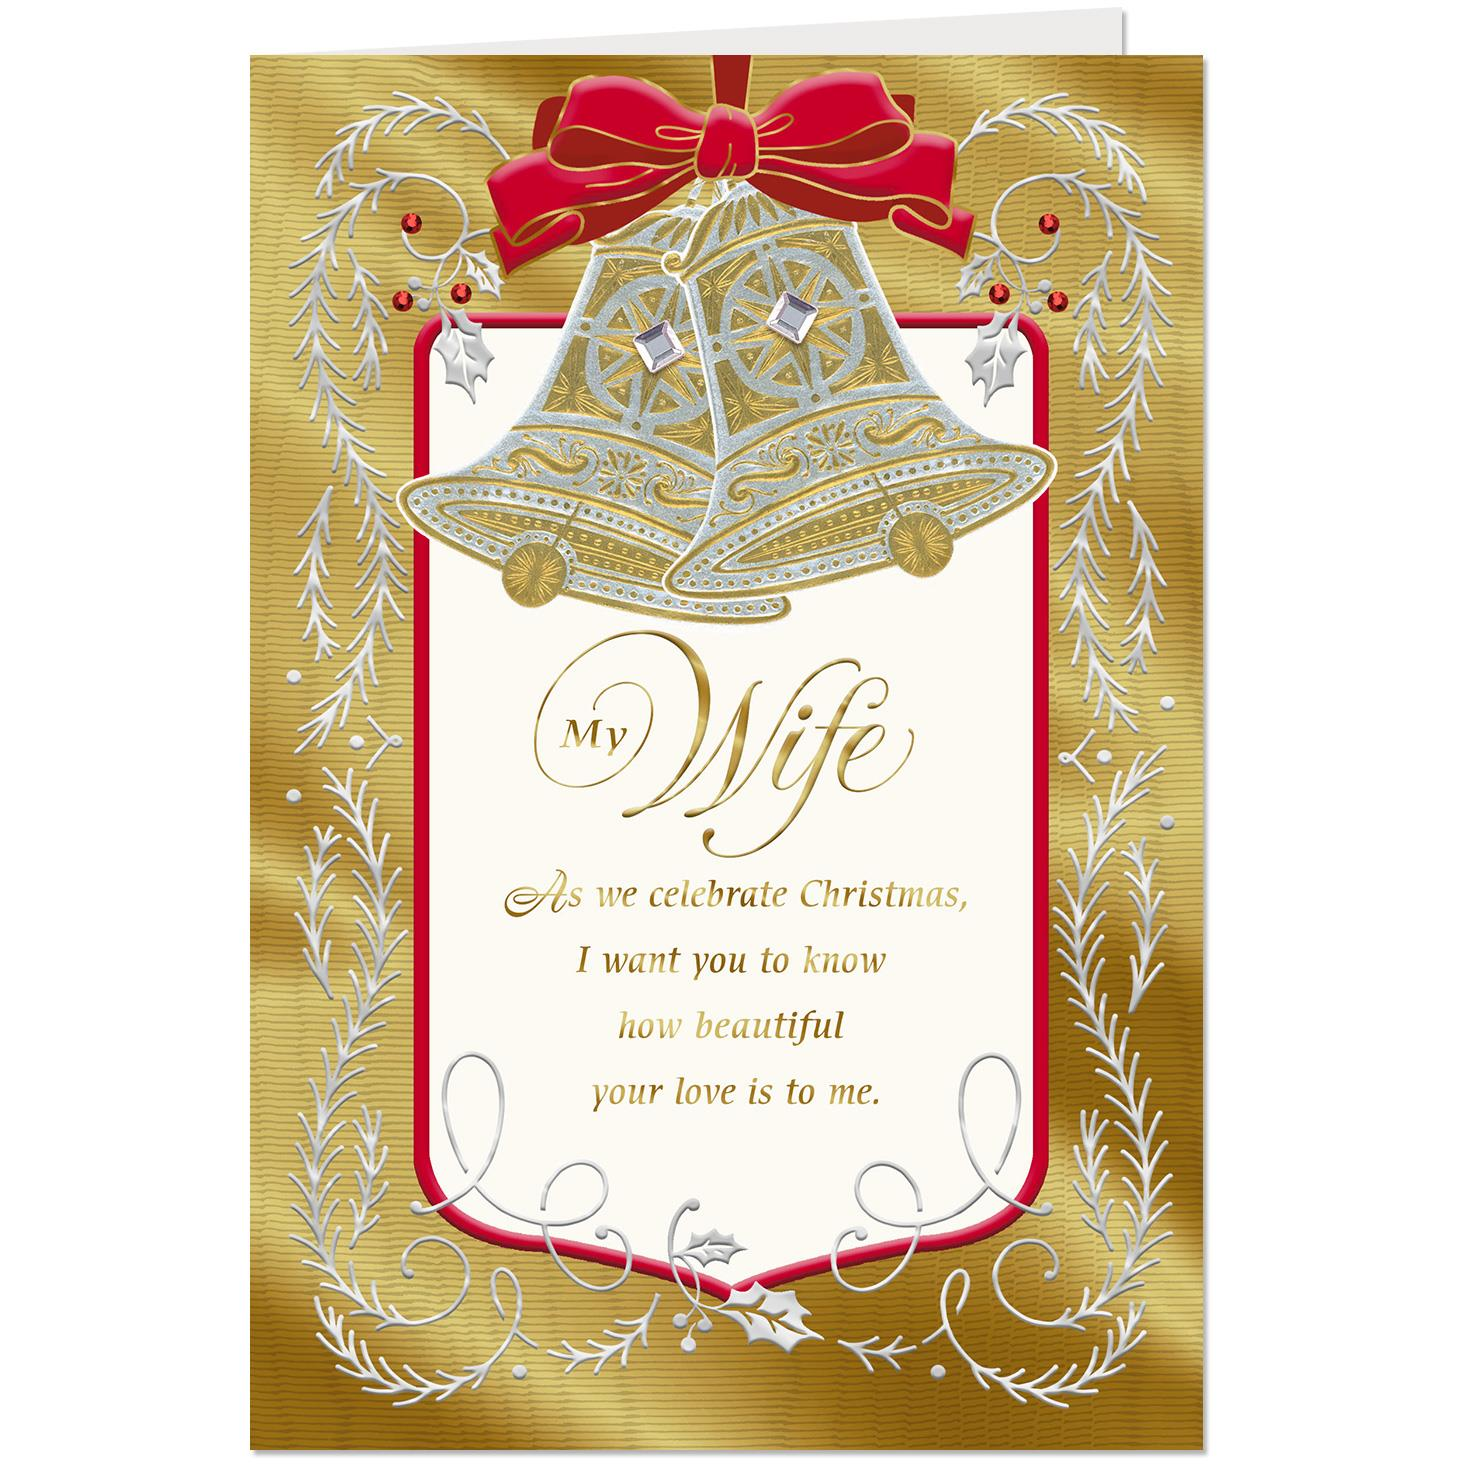 our love is so beautiful christmas card for wife